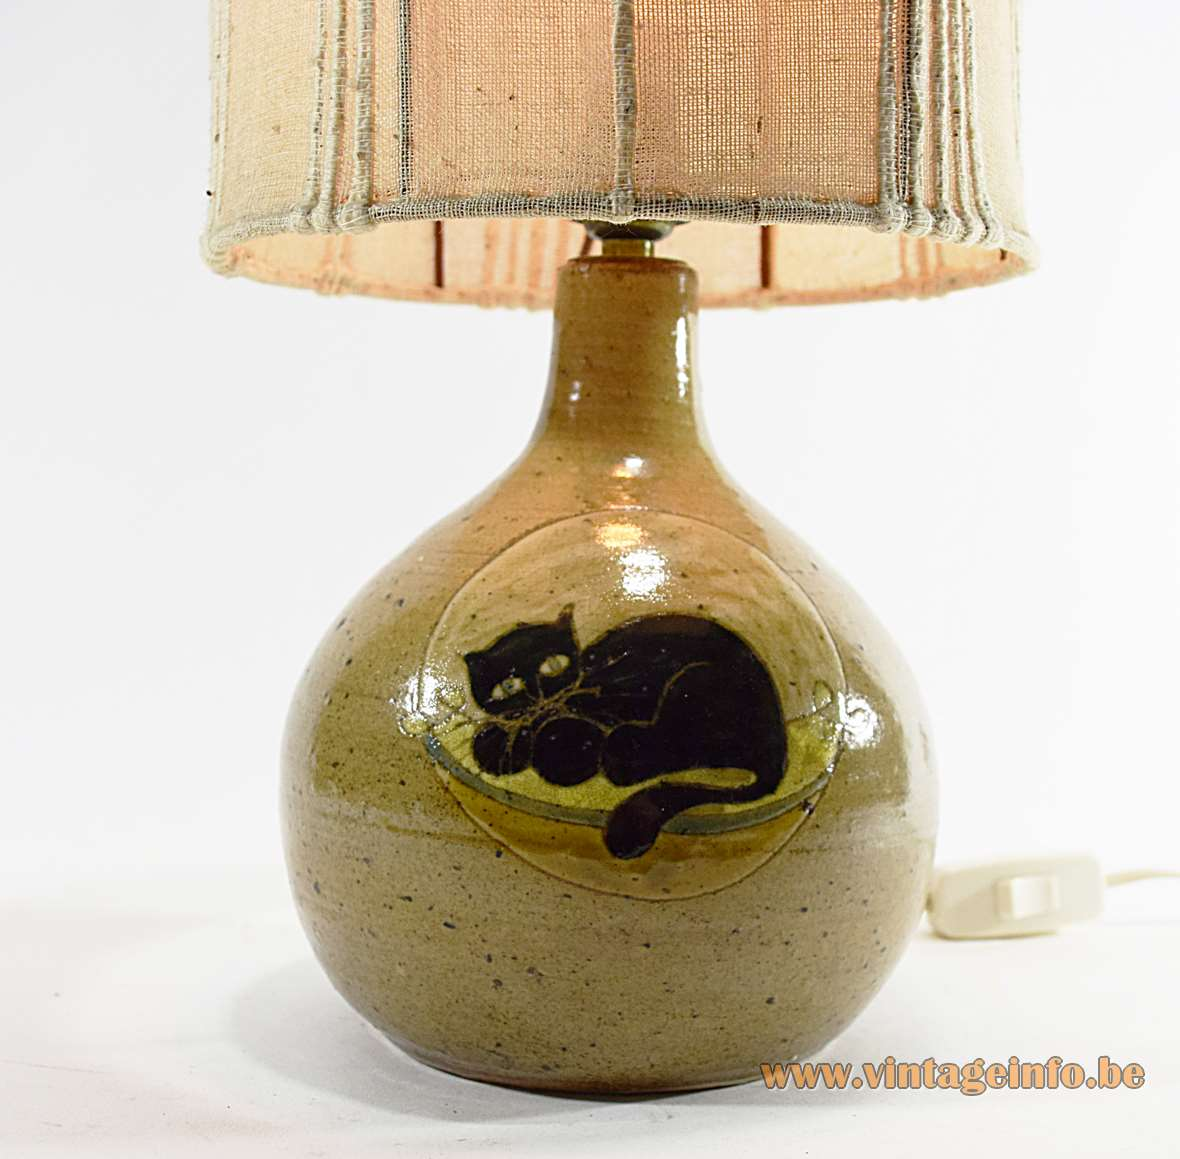 1960s Pussycat Ceramics Table Lamp phoenix logo 1950s fabric lampshade MCM brown black resting cat